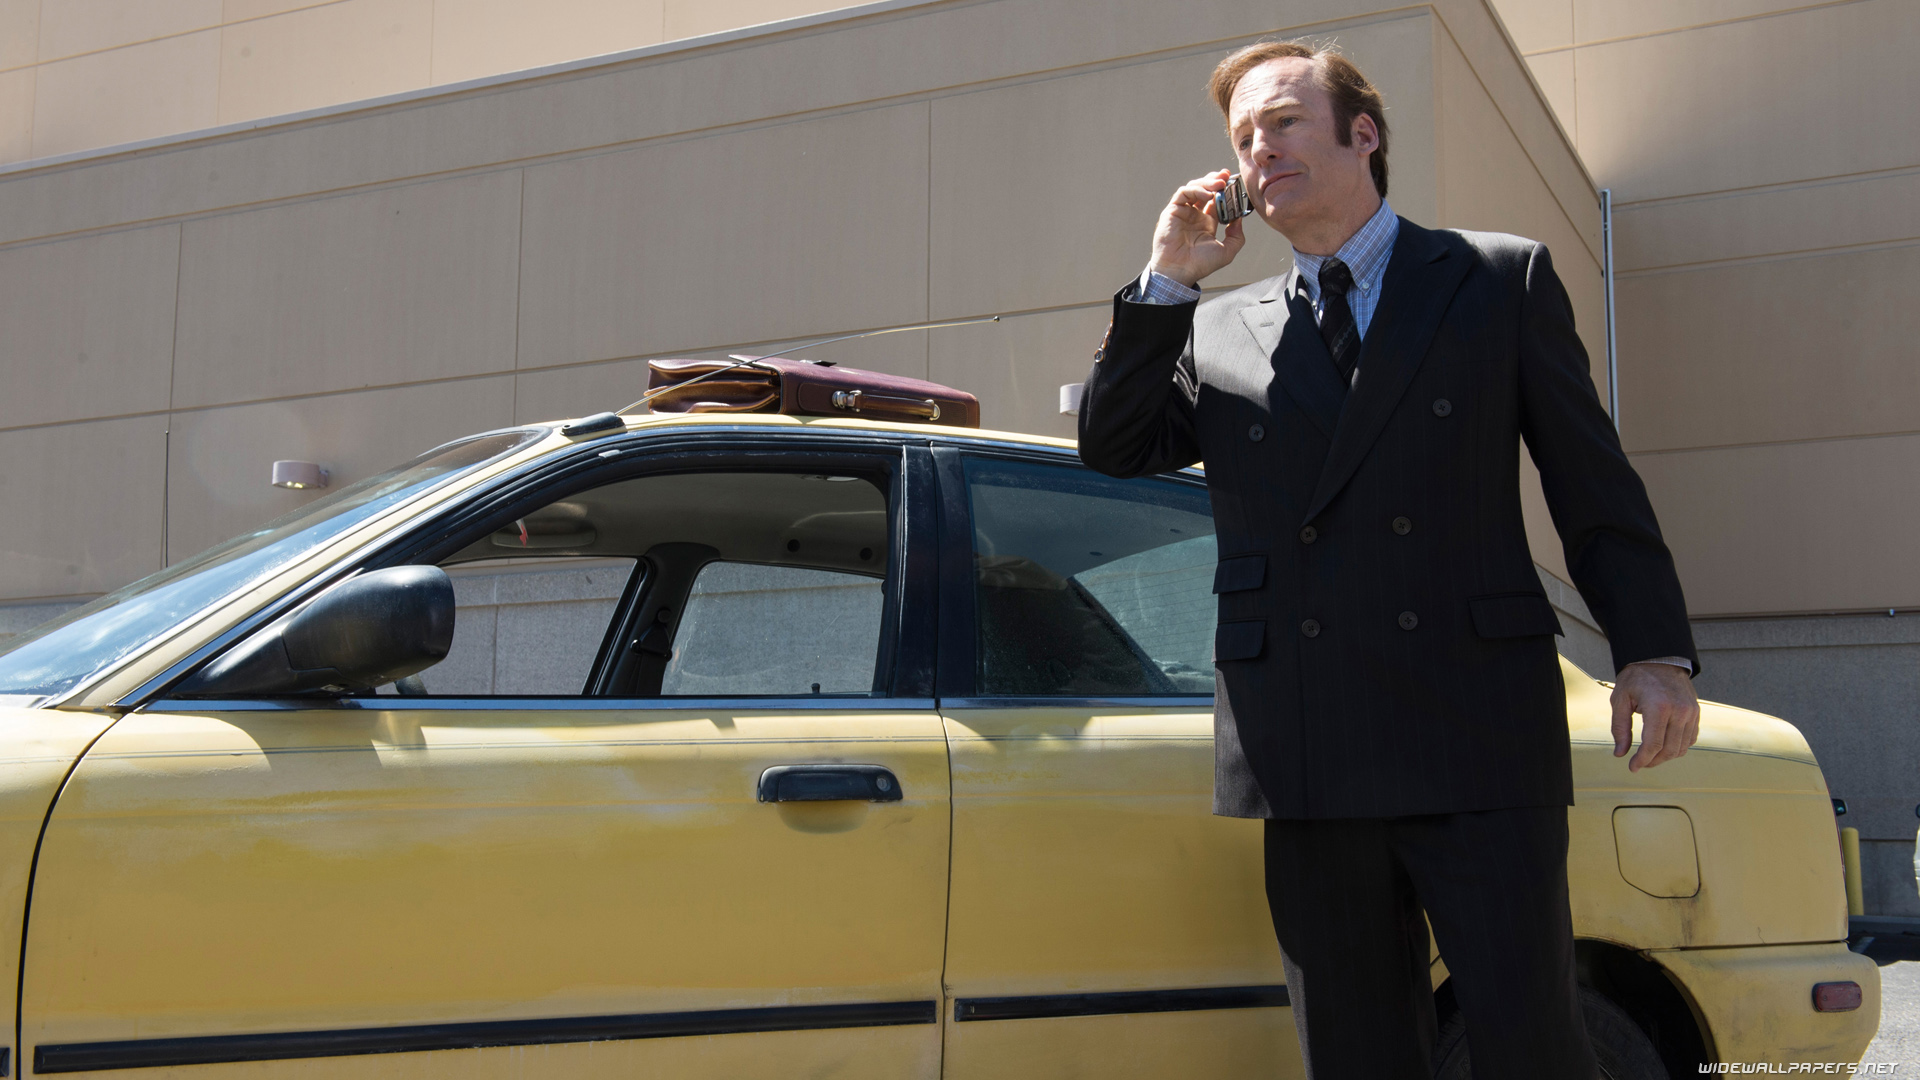 Better Call Saul Tv Series Desktop Wallpapers Hd And Wide